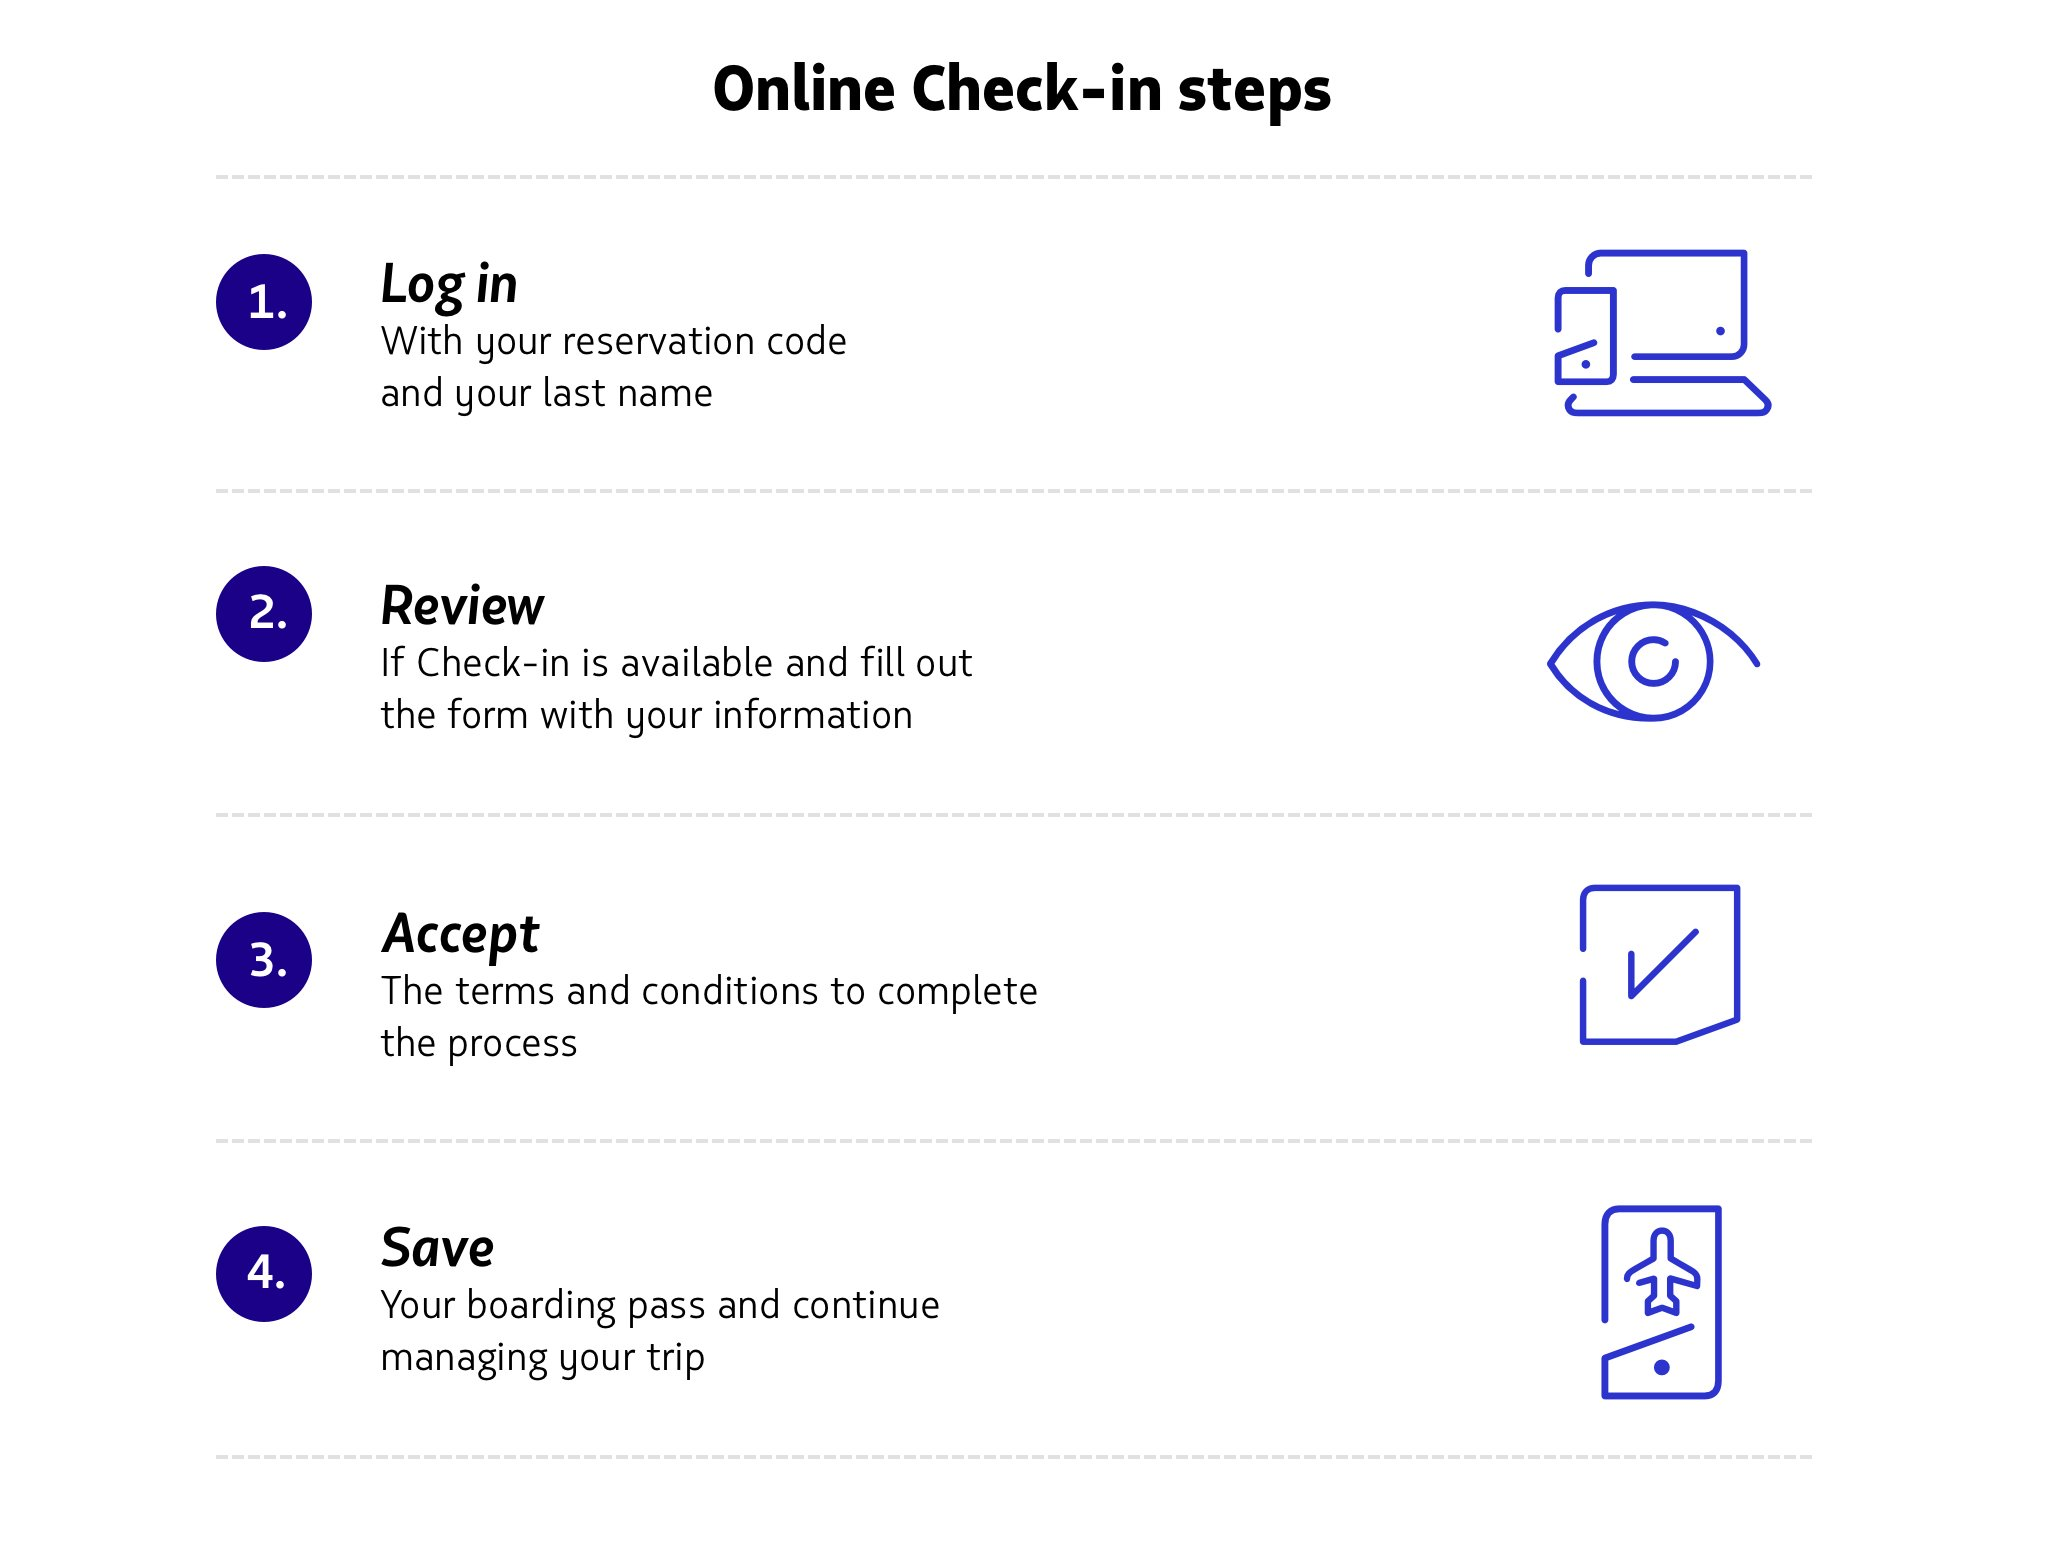 Online Check-in steps